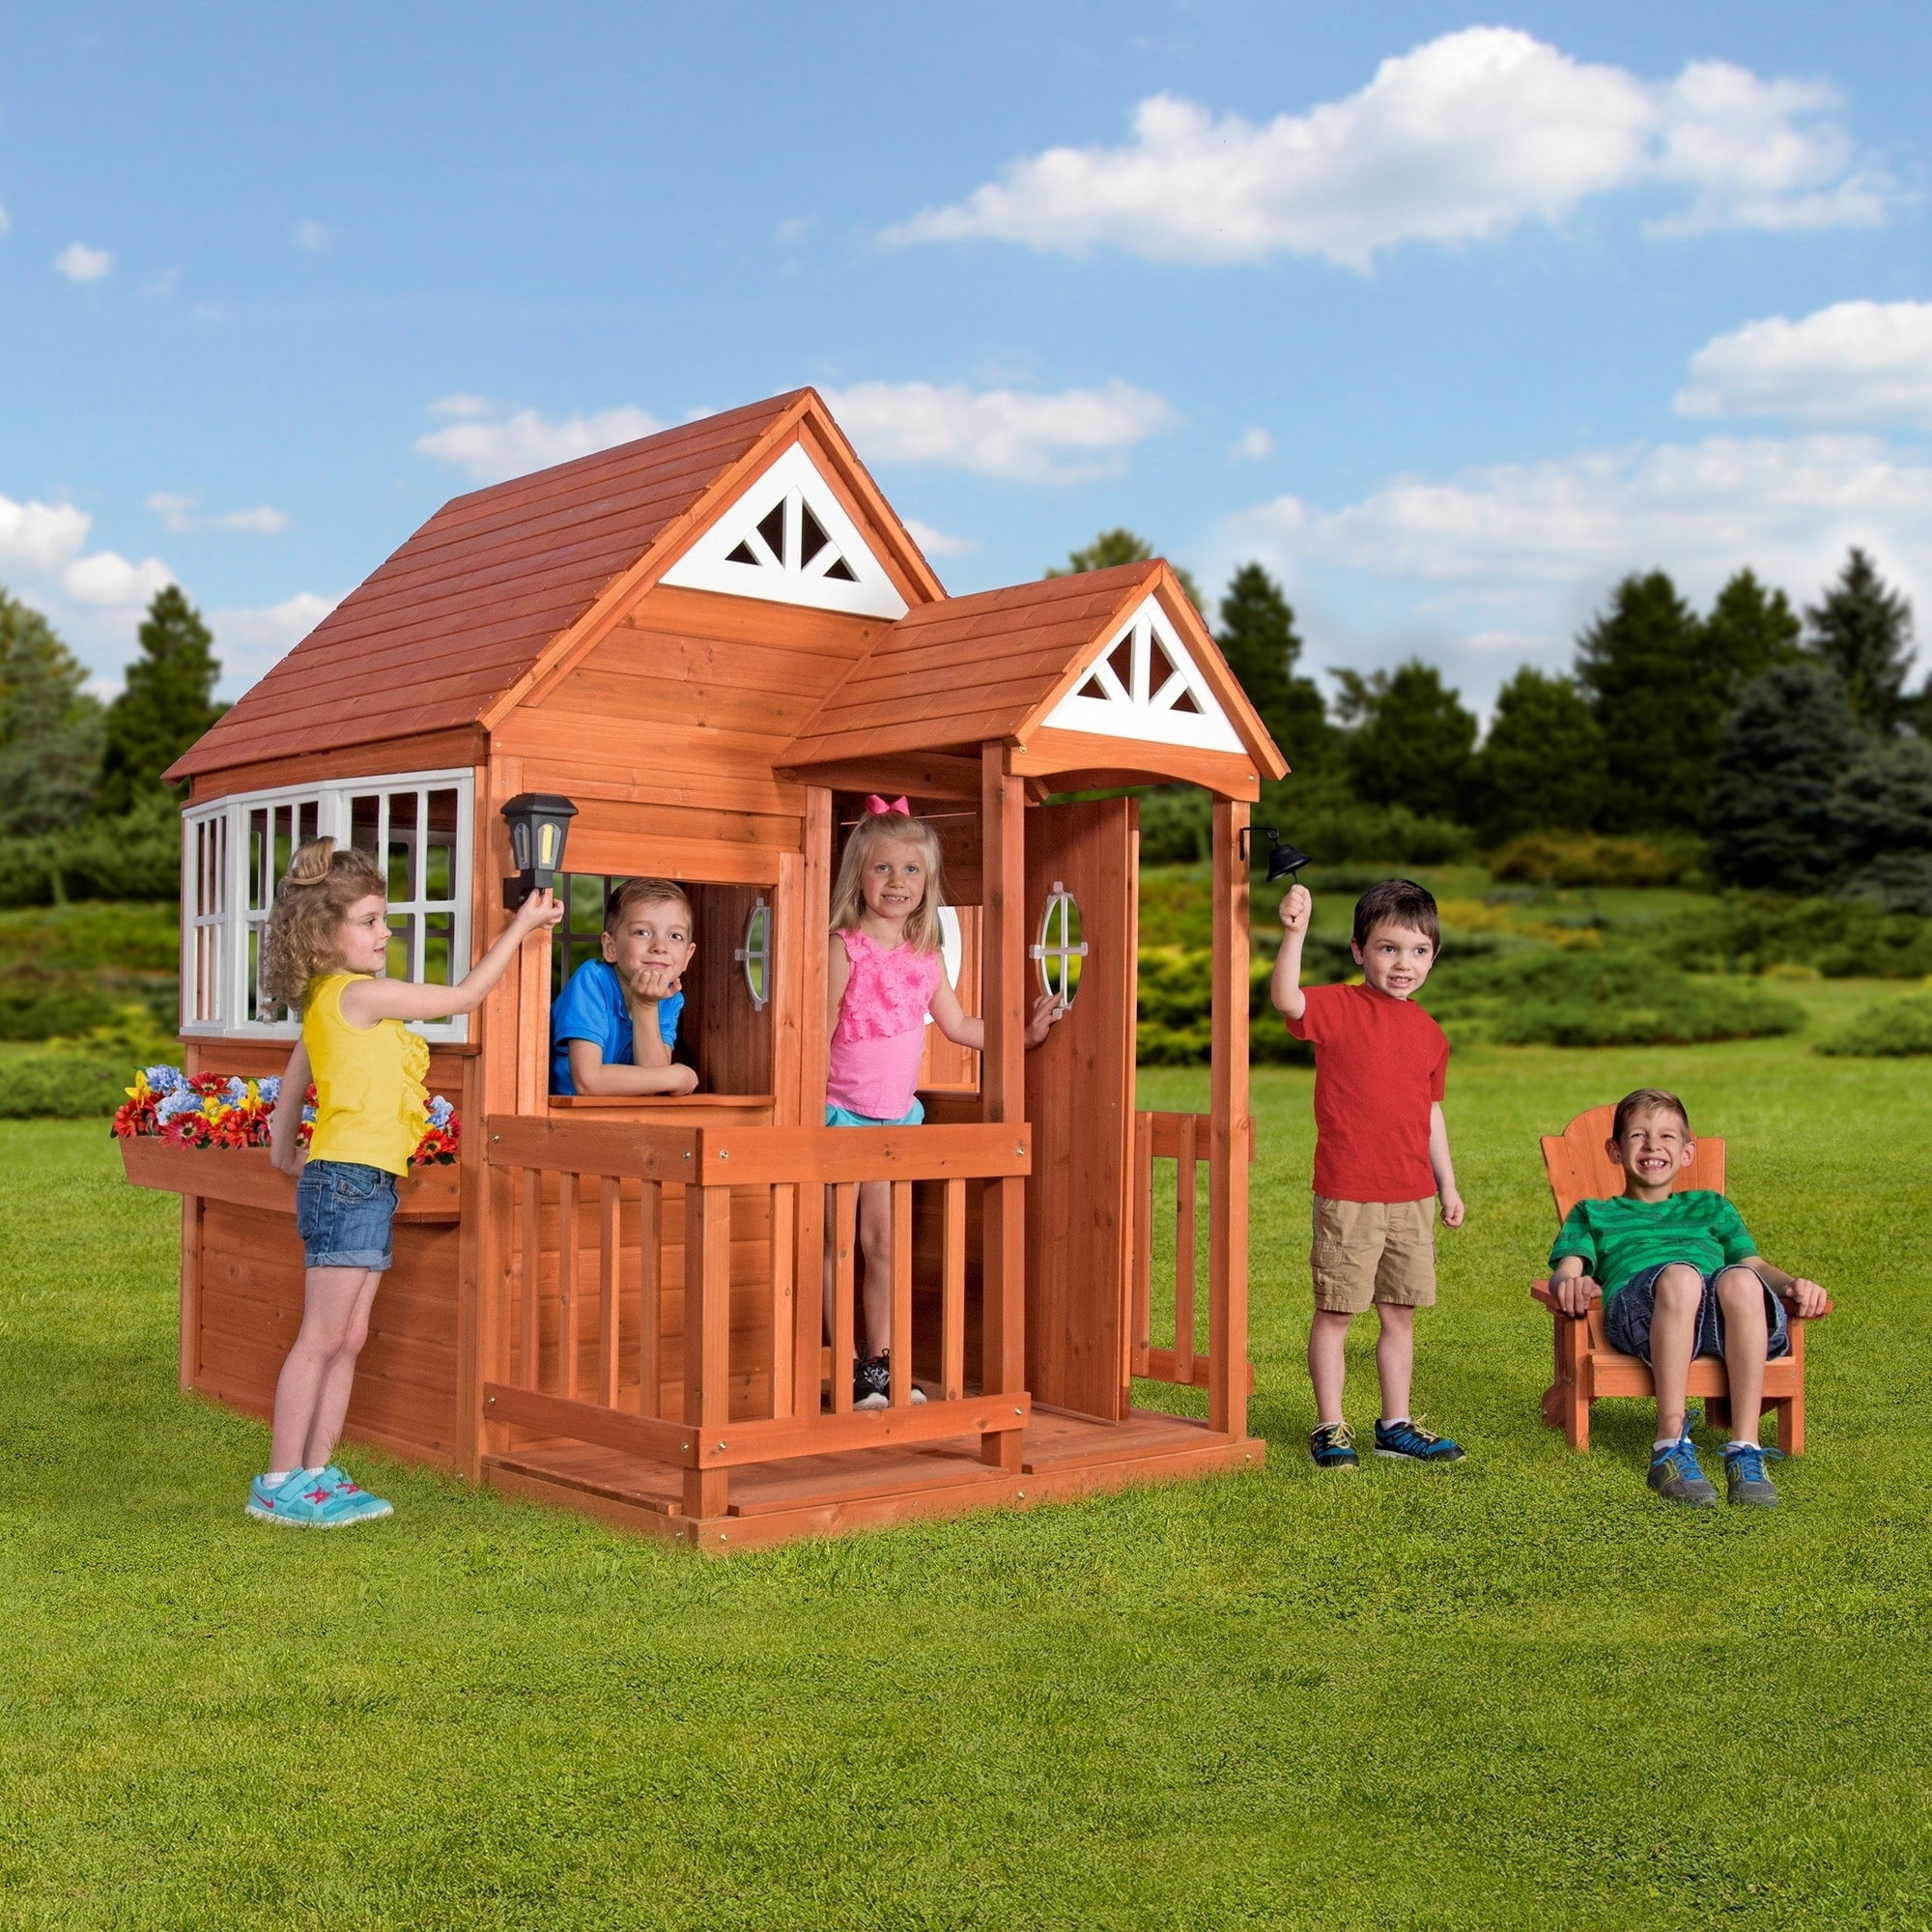 Backyard Discovery Cedar Cottage shop backyard discovery deluxe cedar mansion outdoor wooden